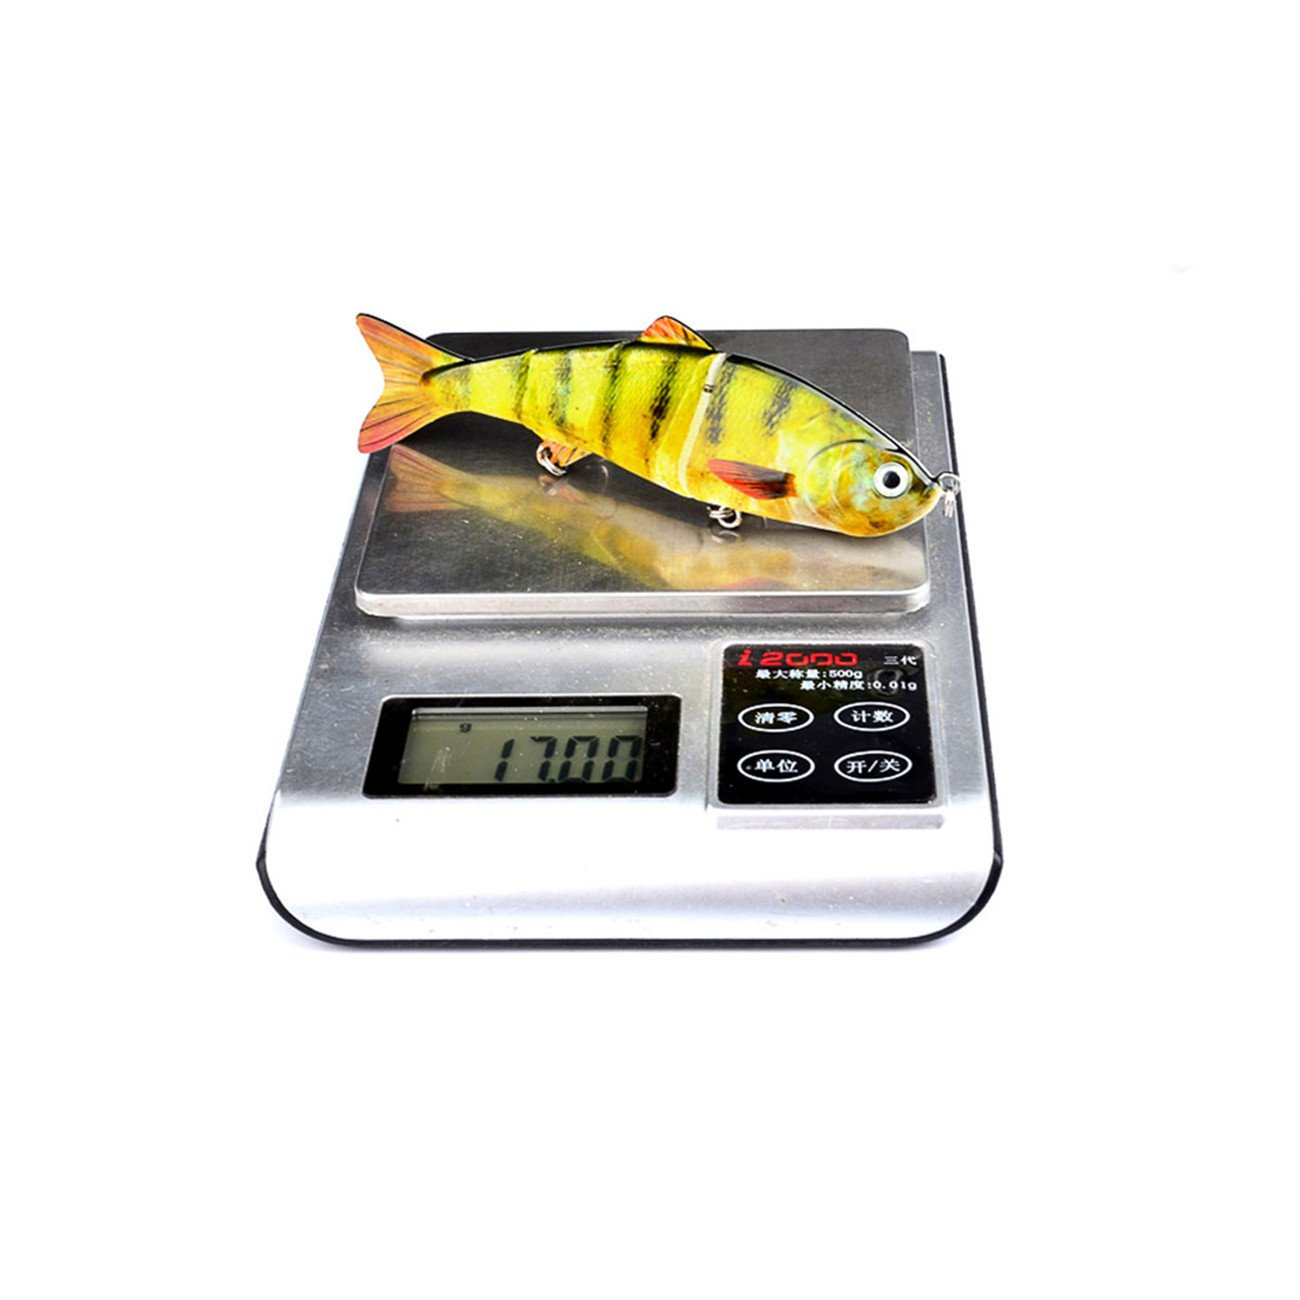 Life-like Multi-section Floating Lures,12cm//17g Classic Lure Bait Plastic Hard Bait MKNzone 1 pc Multi-jointed Fishing Lure 7 Random Colour